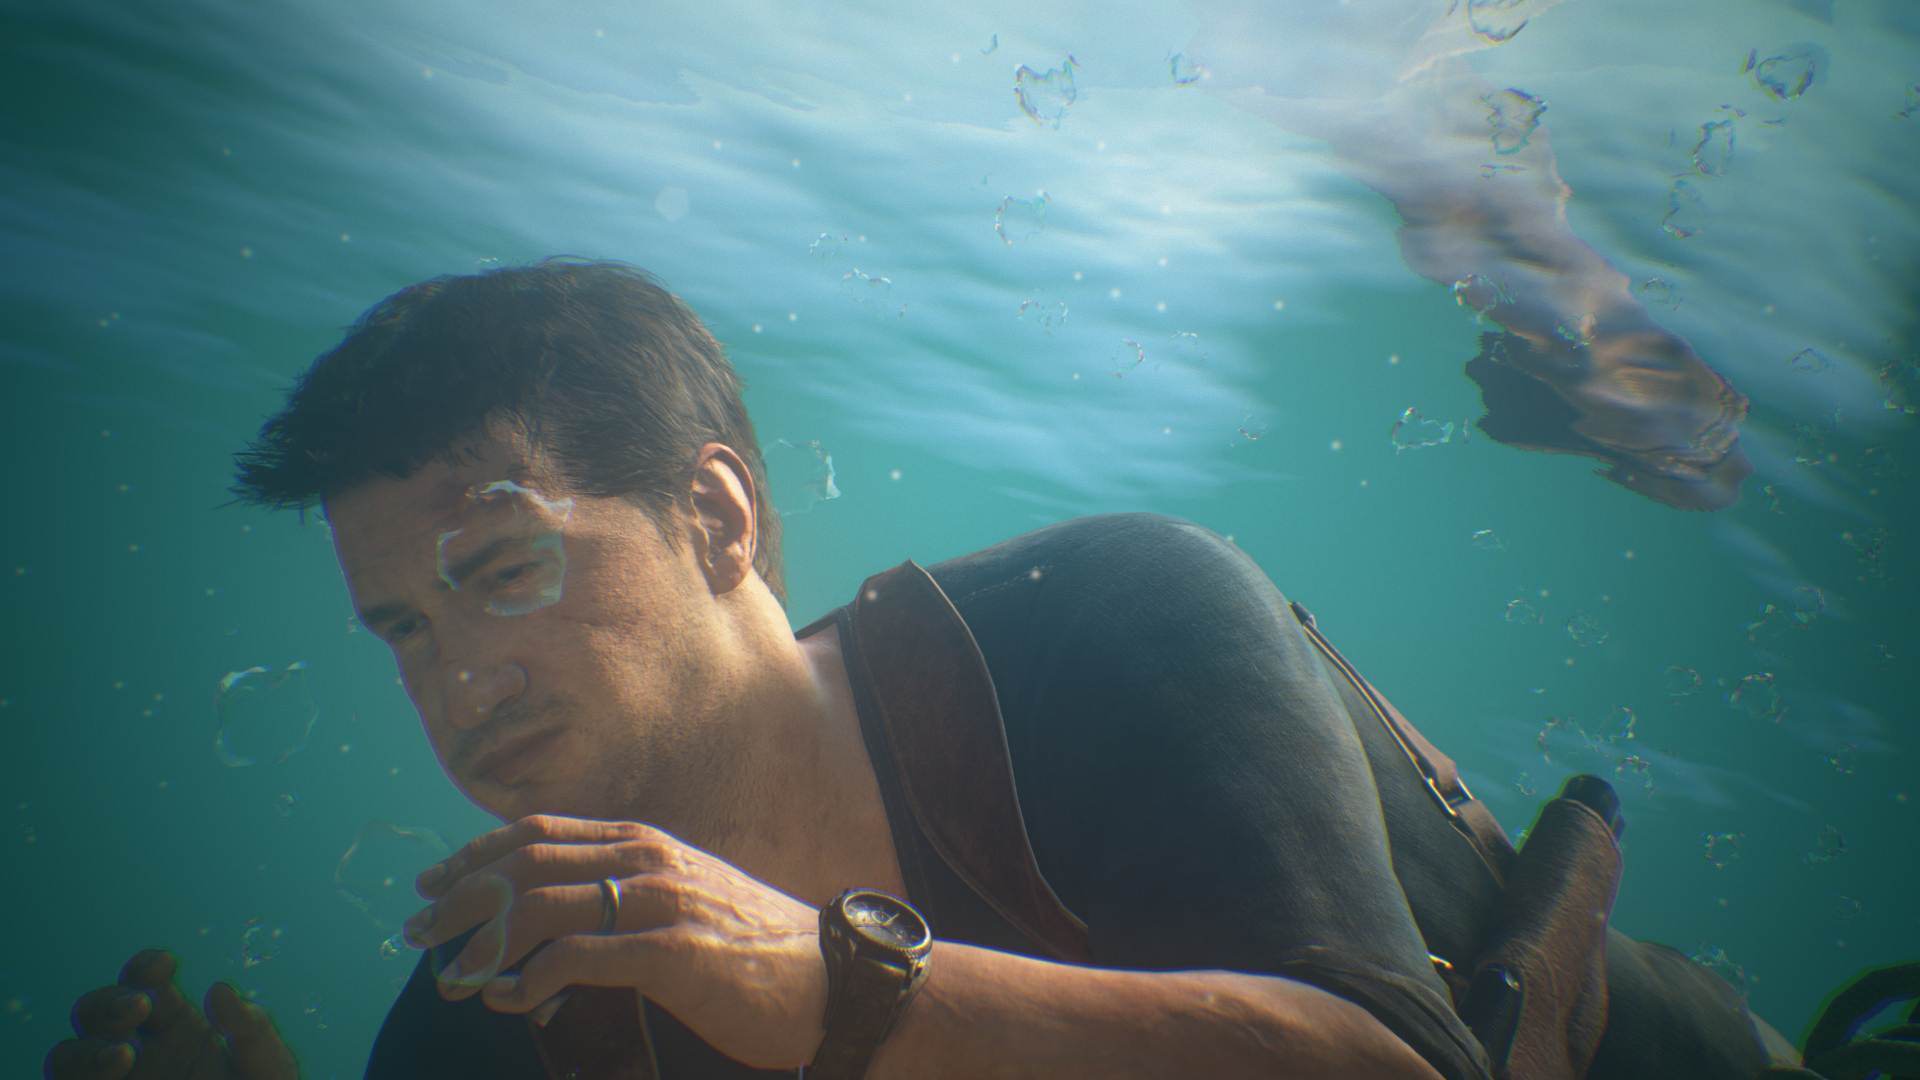 uncharted4_eldesenlacixyoc.png